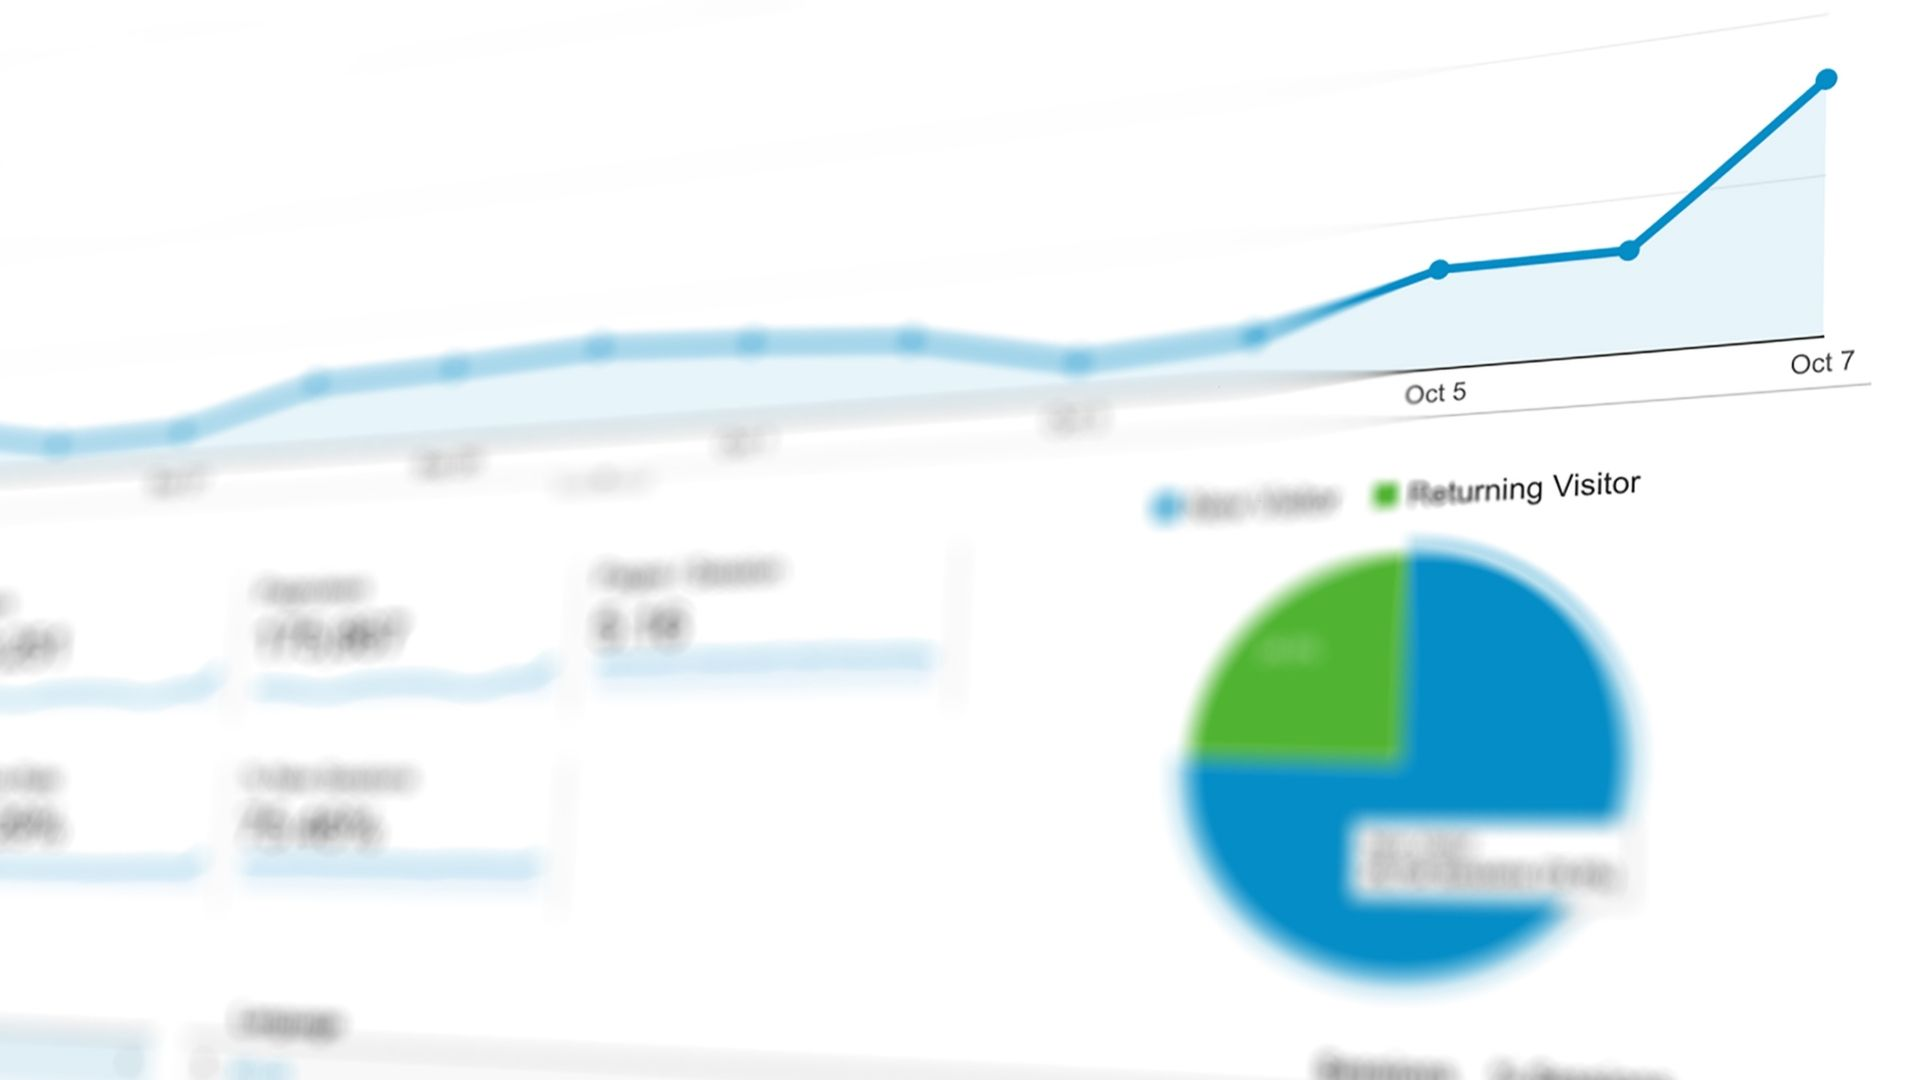 How We Measure Our Website's Performance